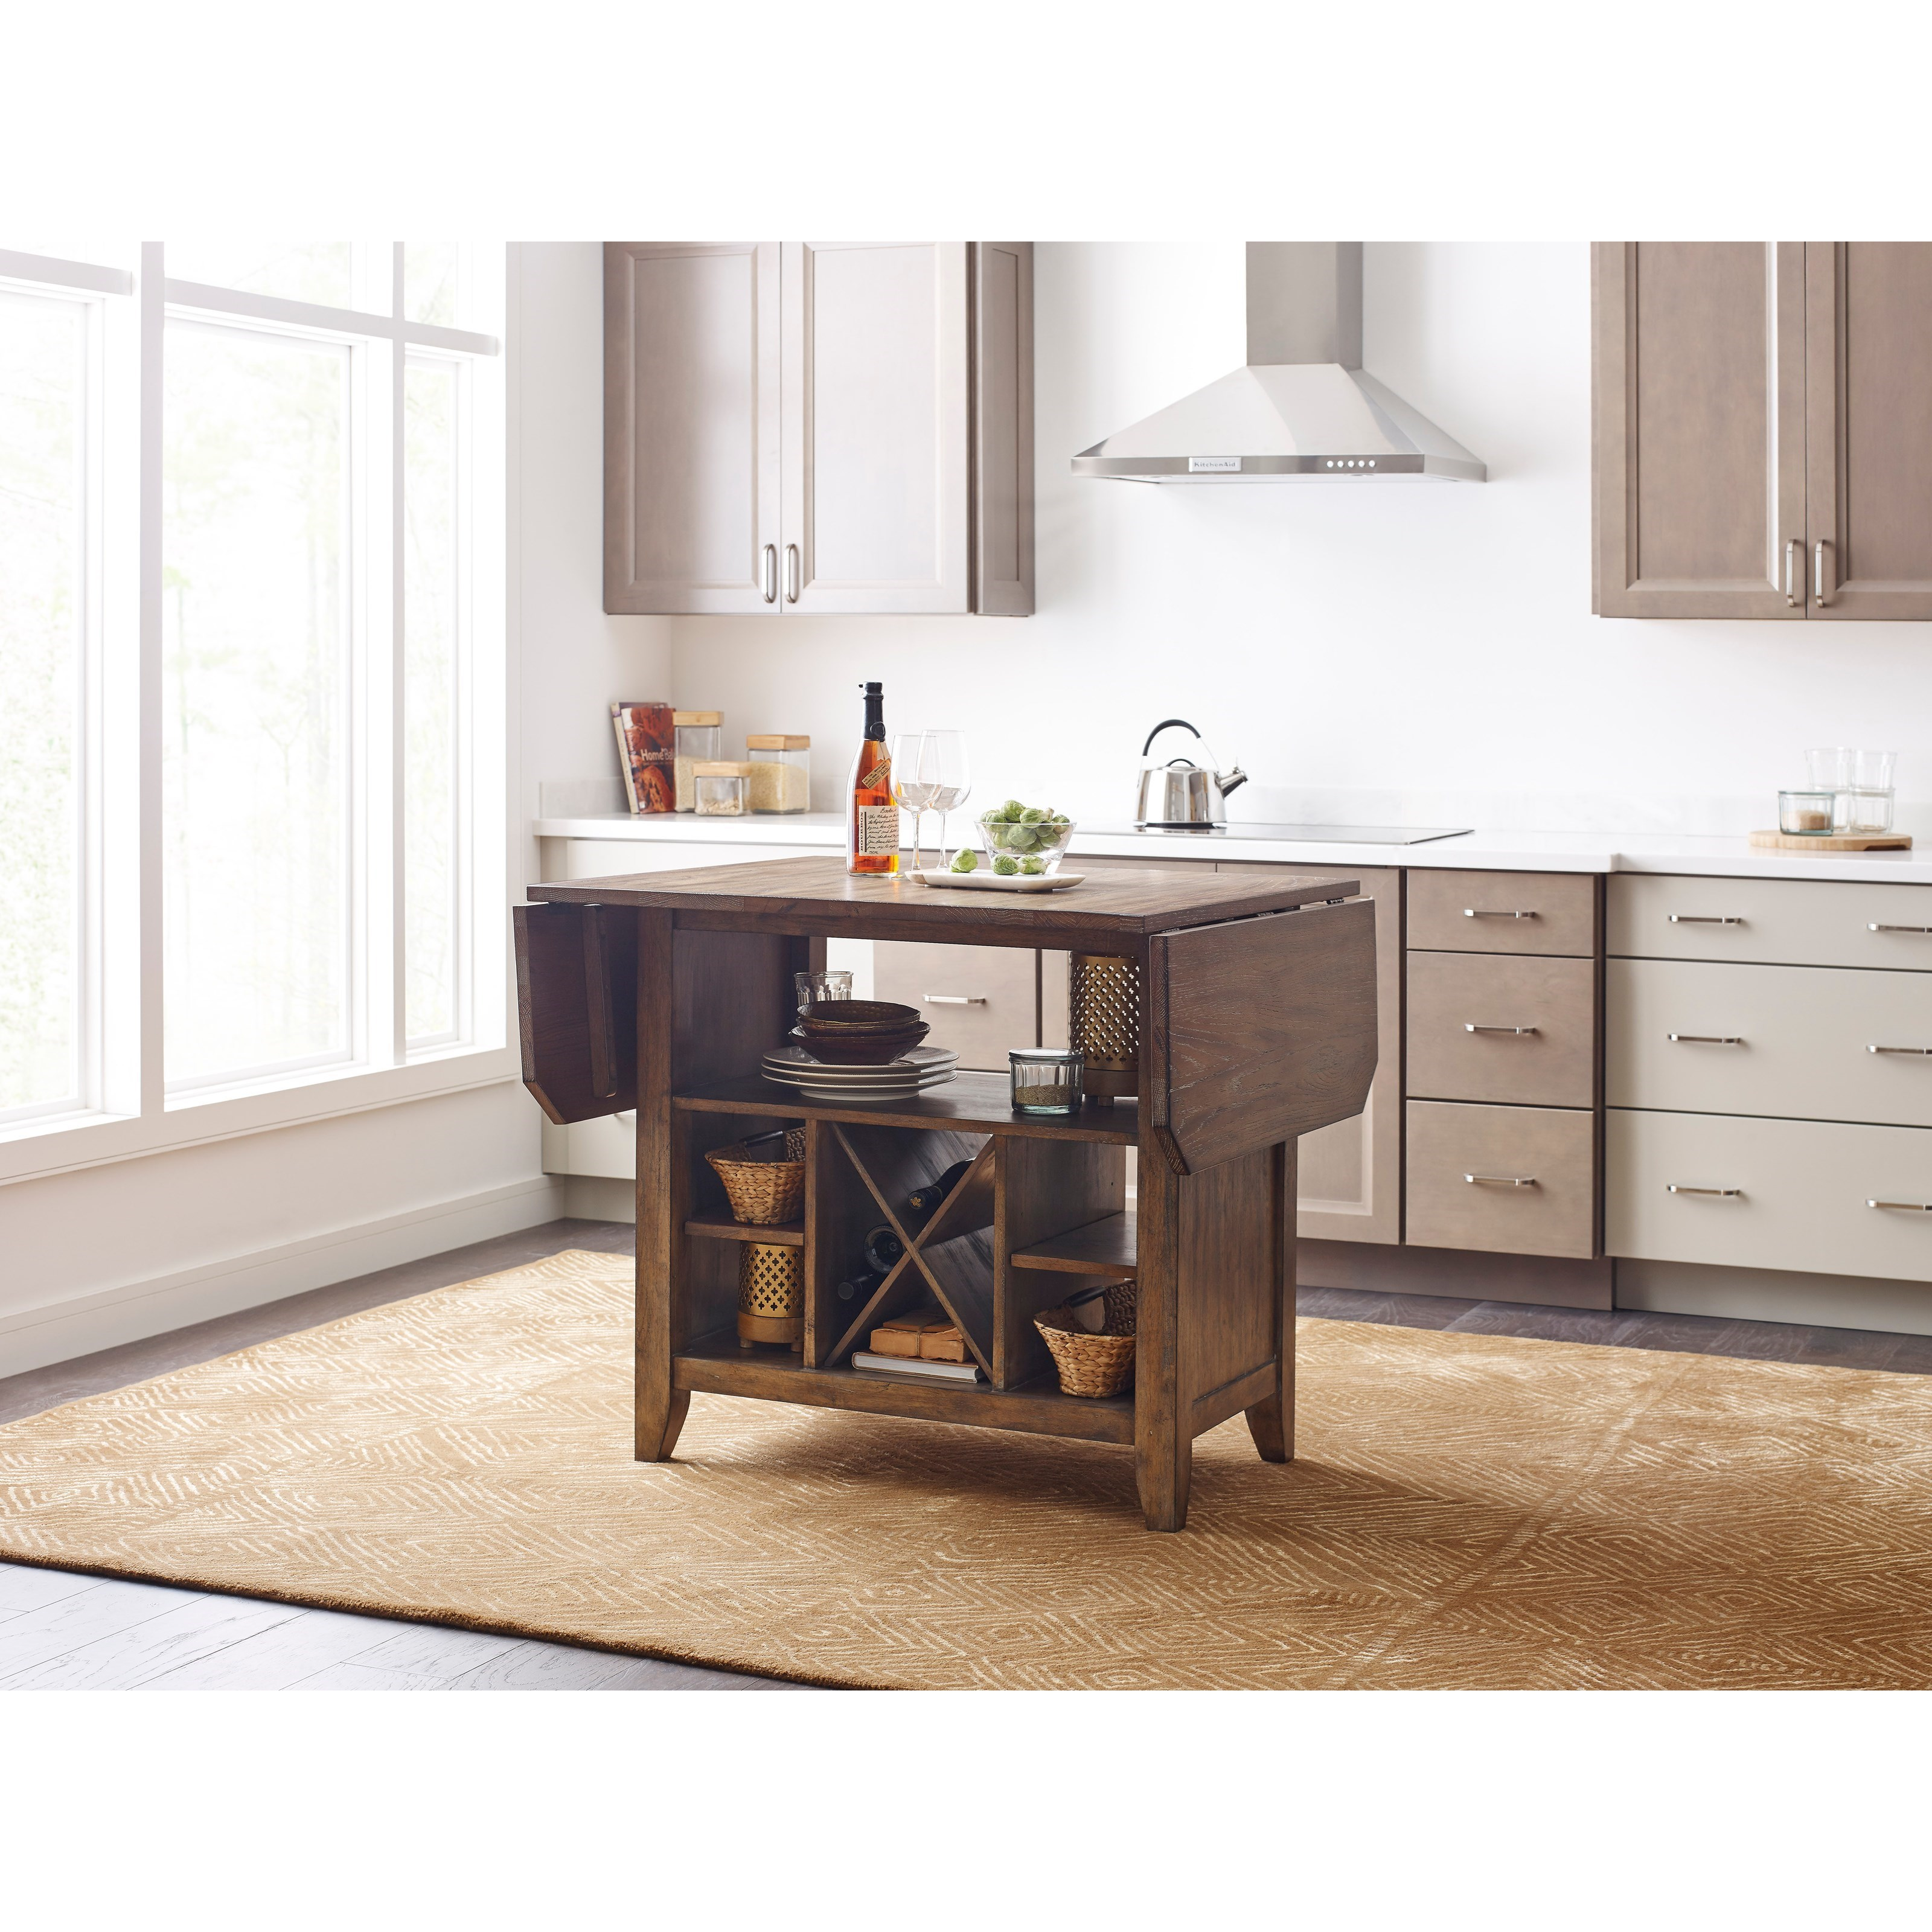 Kincaid Furniture The Nook 663 746p Solid Wood Kitchen